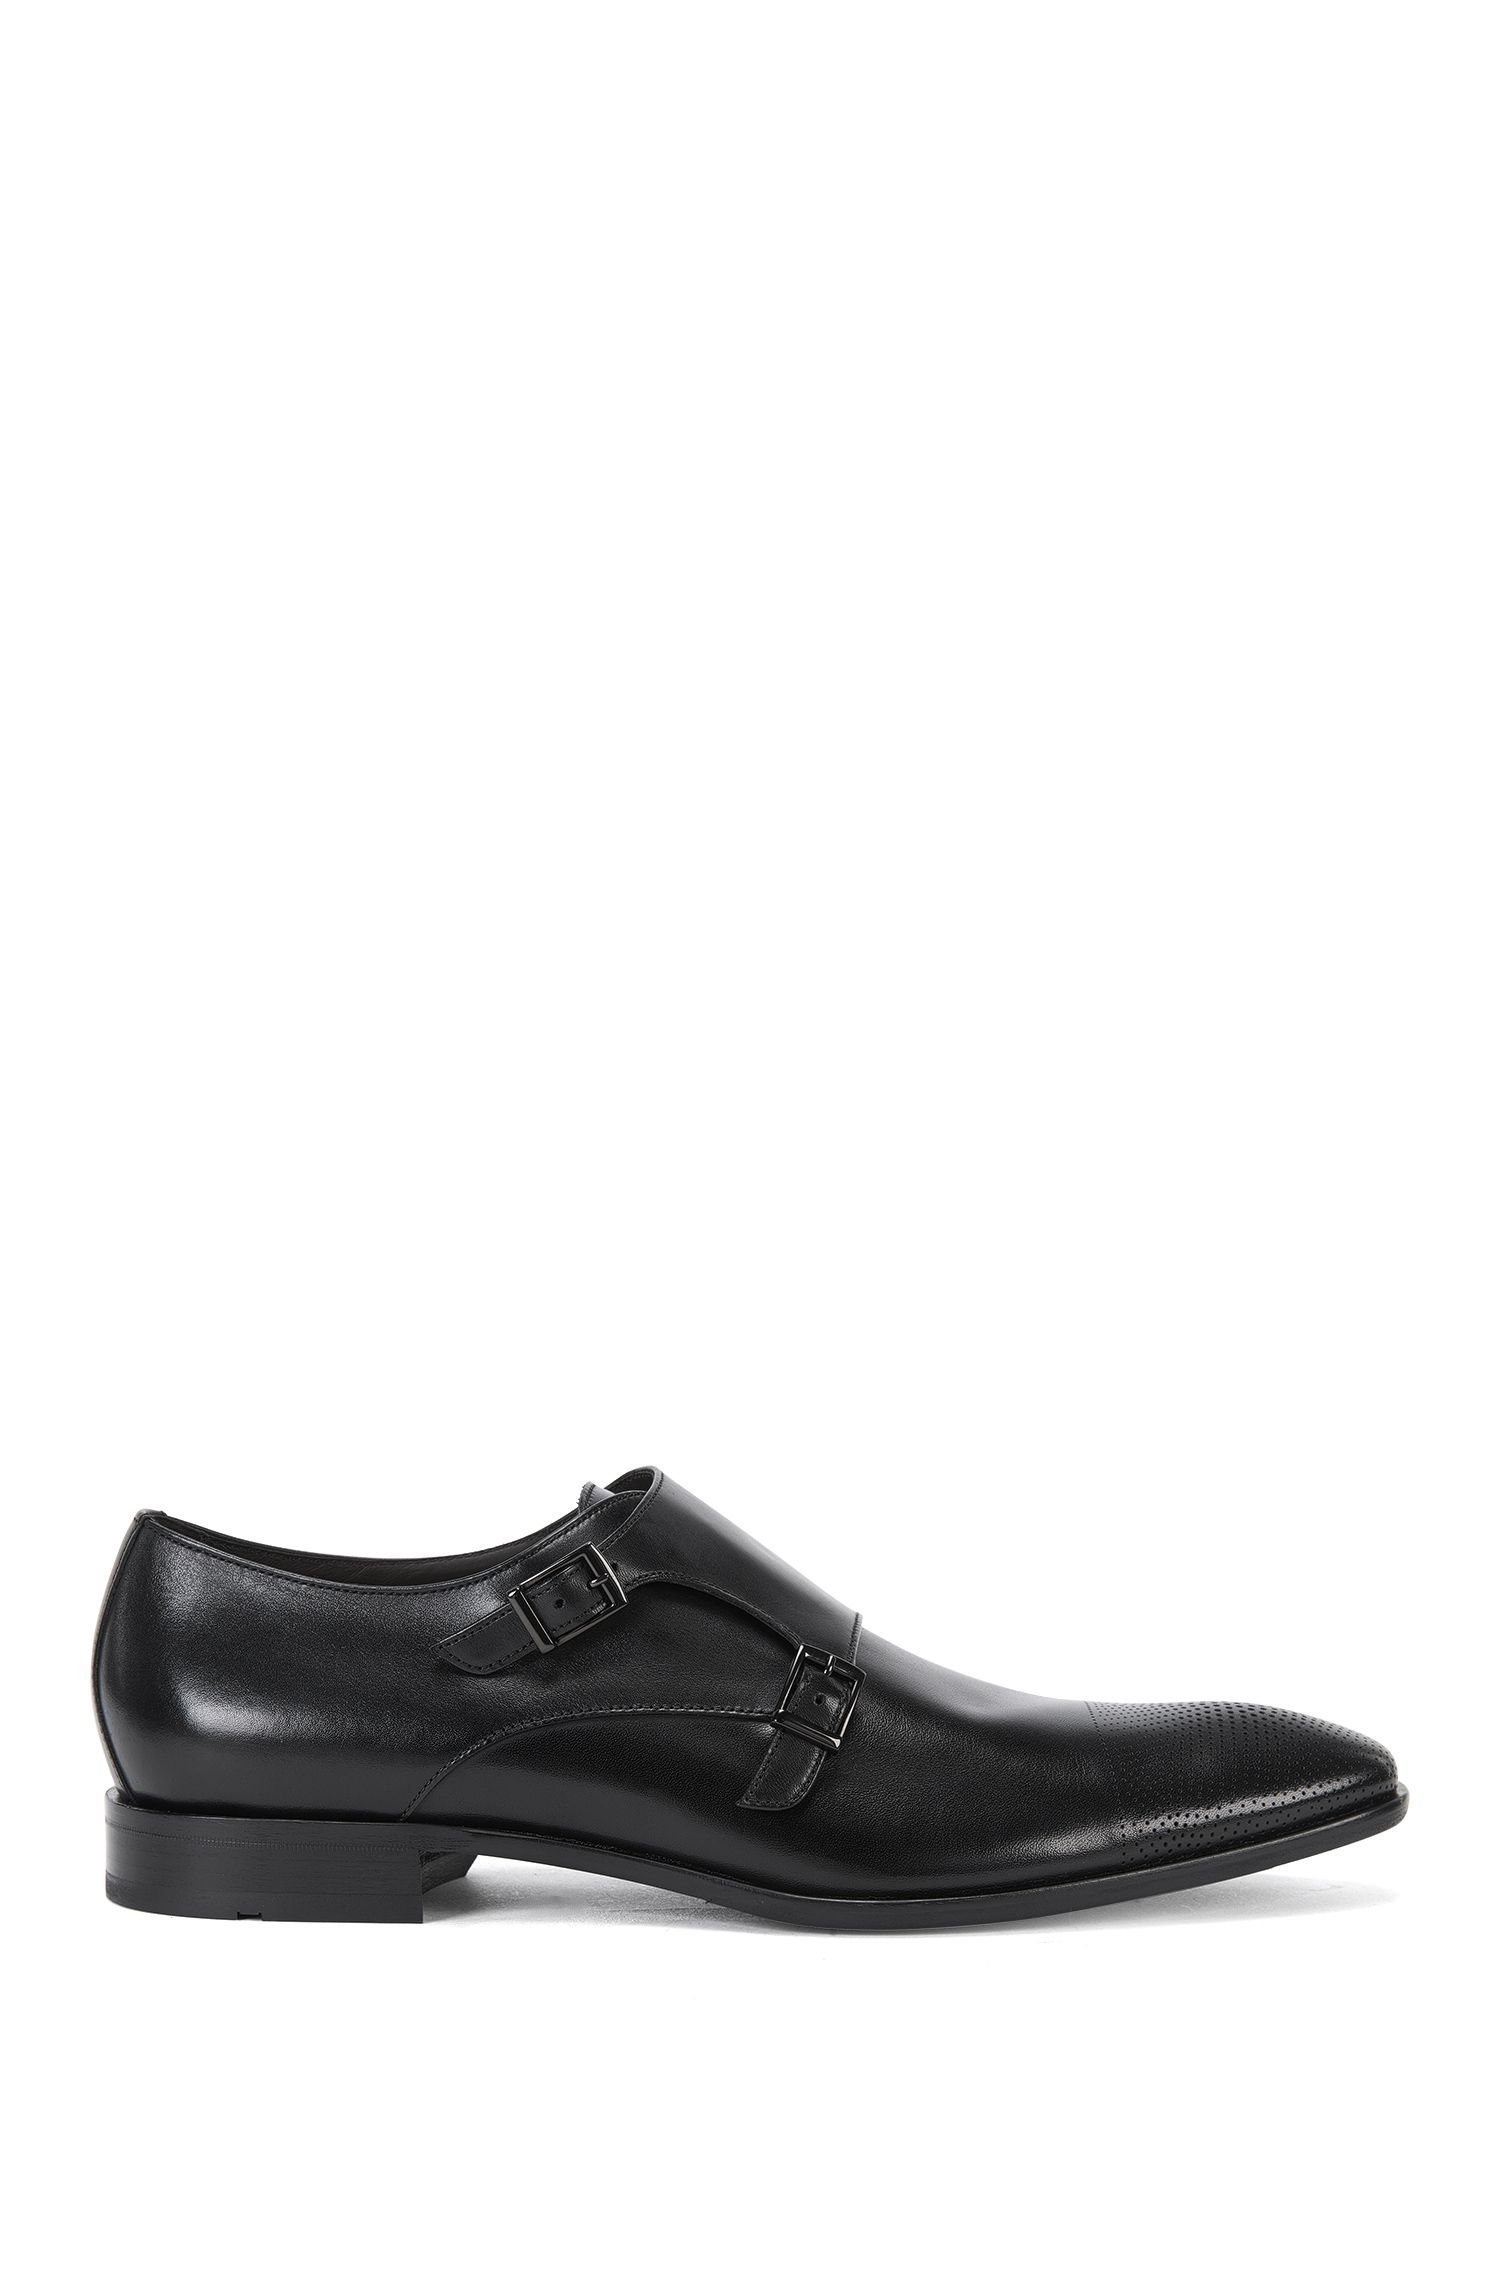 Leather Monk Strap Dress Shoe | Chelsea Monk Clts